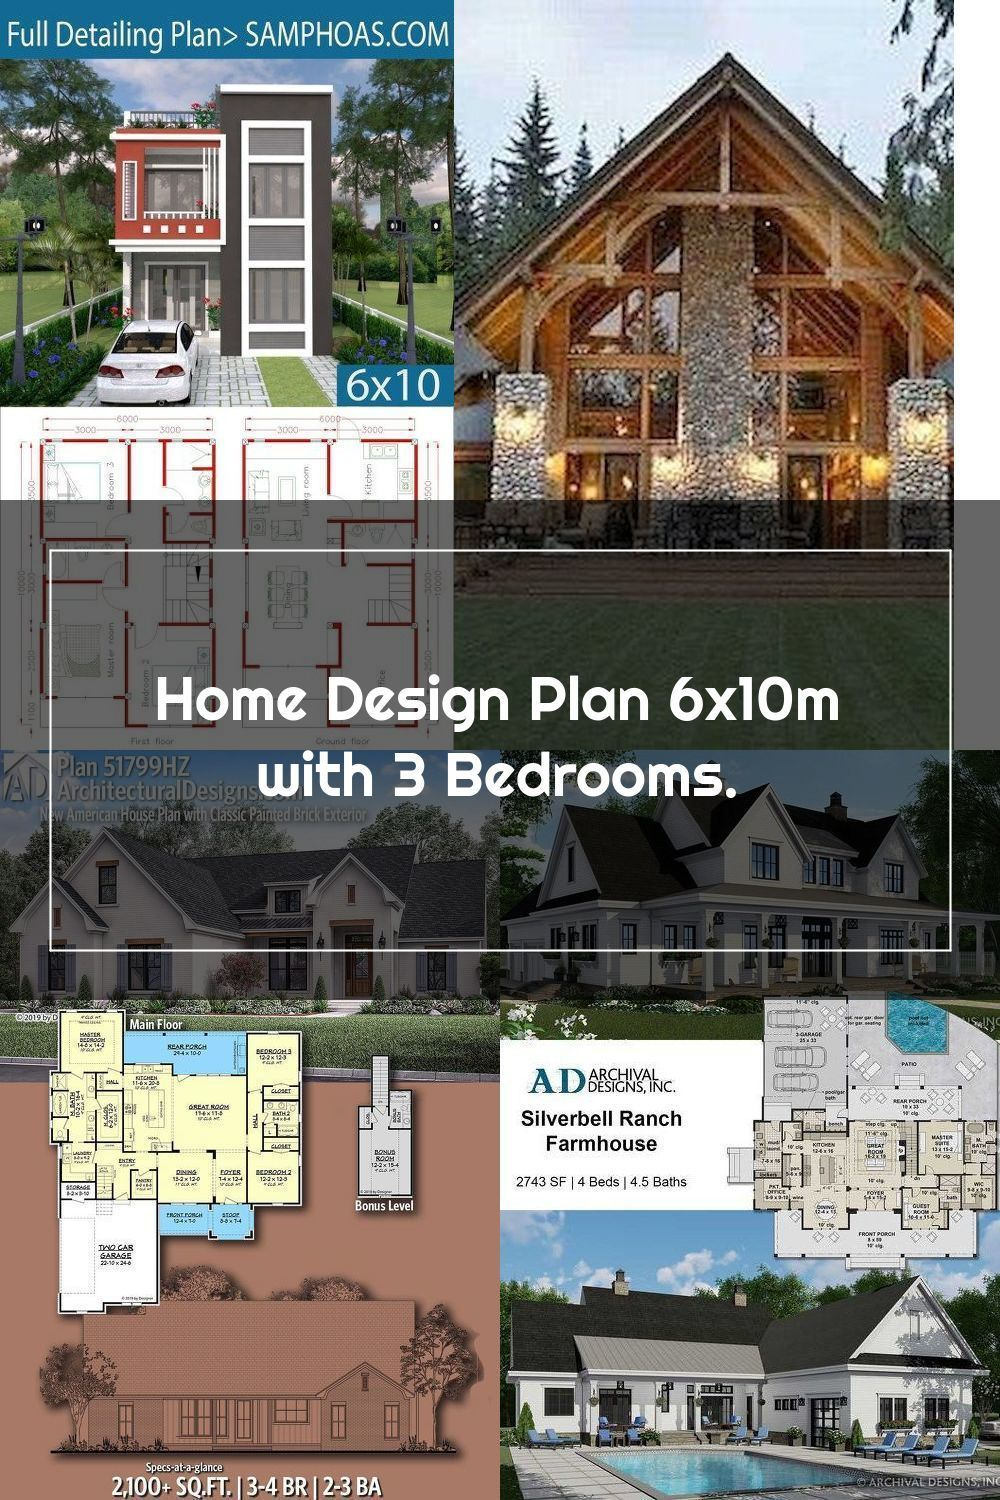 Home Design Plan 6x10m With 3 Bedrooms Samphoas Plan Need Laundry Area In 2020 Home Design Plan House Design Design